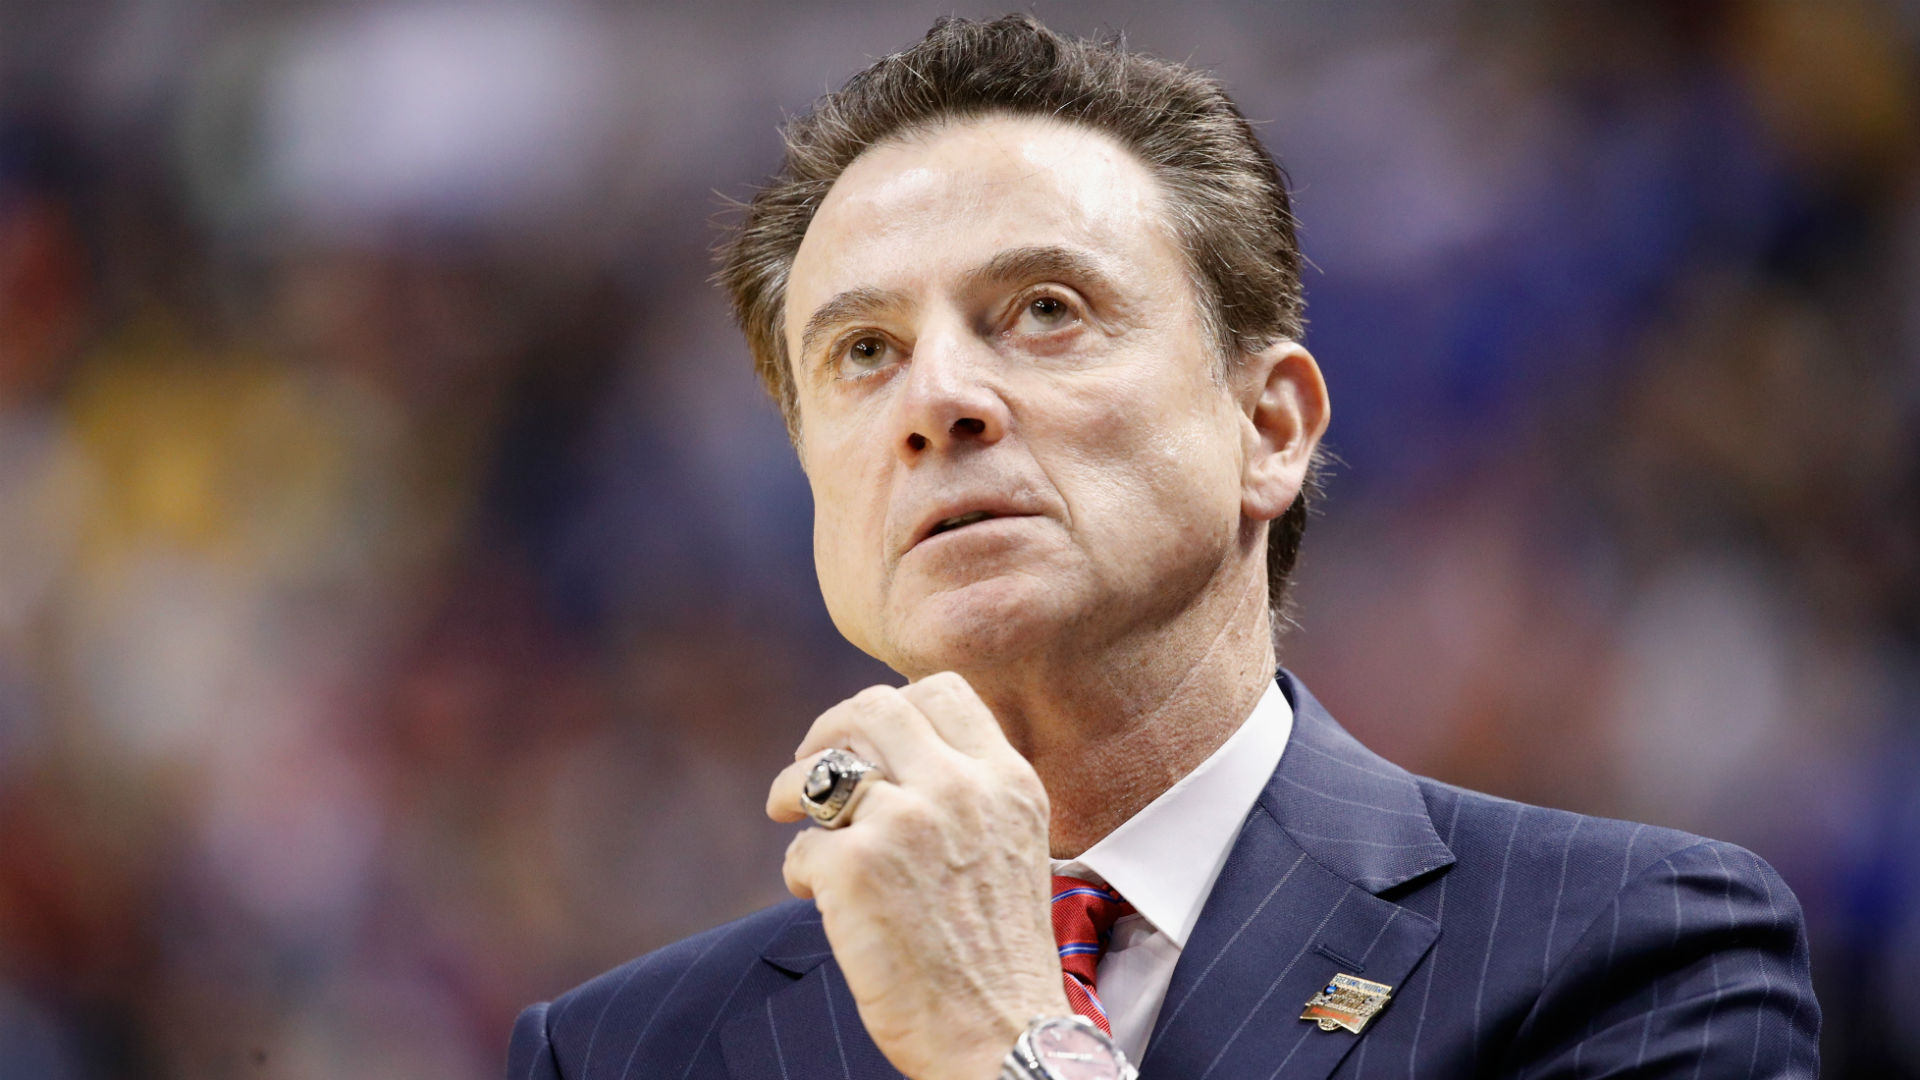 Rick Pitino continues to deny any knowledge of NCAA recruiting wrongdoing